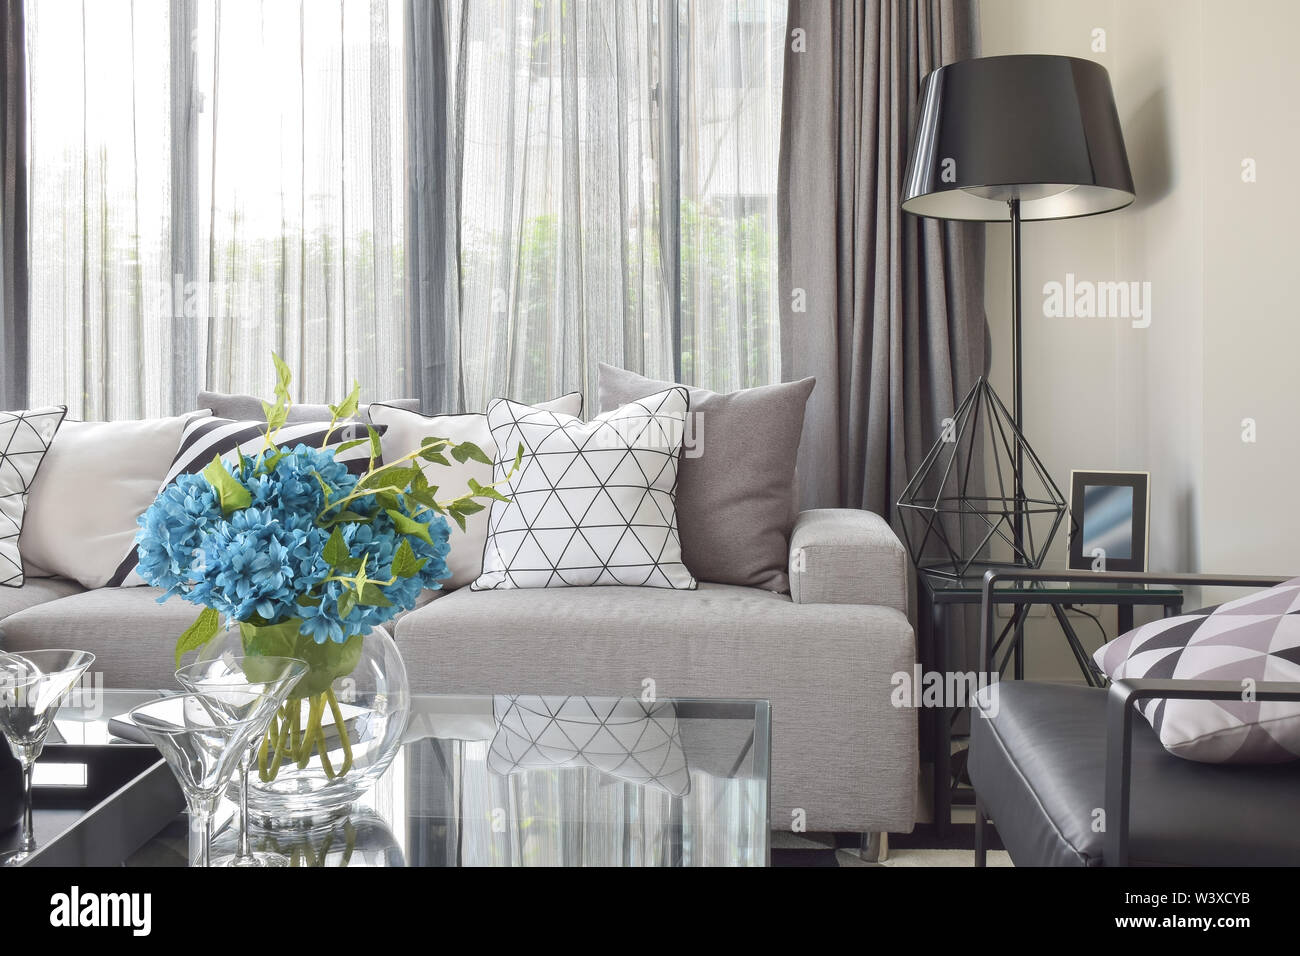 Awesome Varies Pattern Pillows In Monotone Setting On Light Gray Machost Co Dining Chair Design Ideas Machostcouk